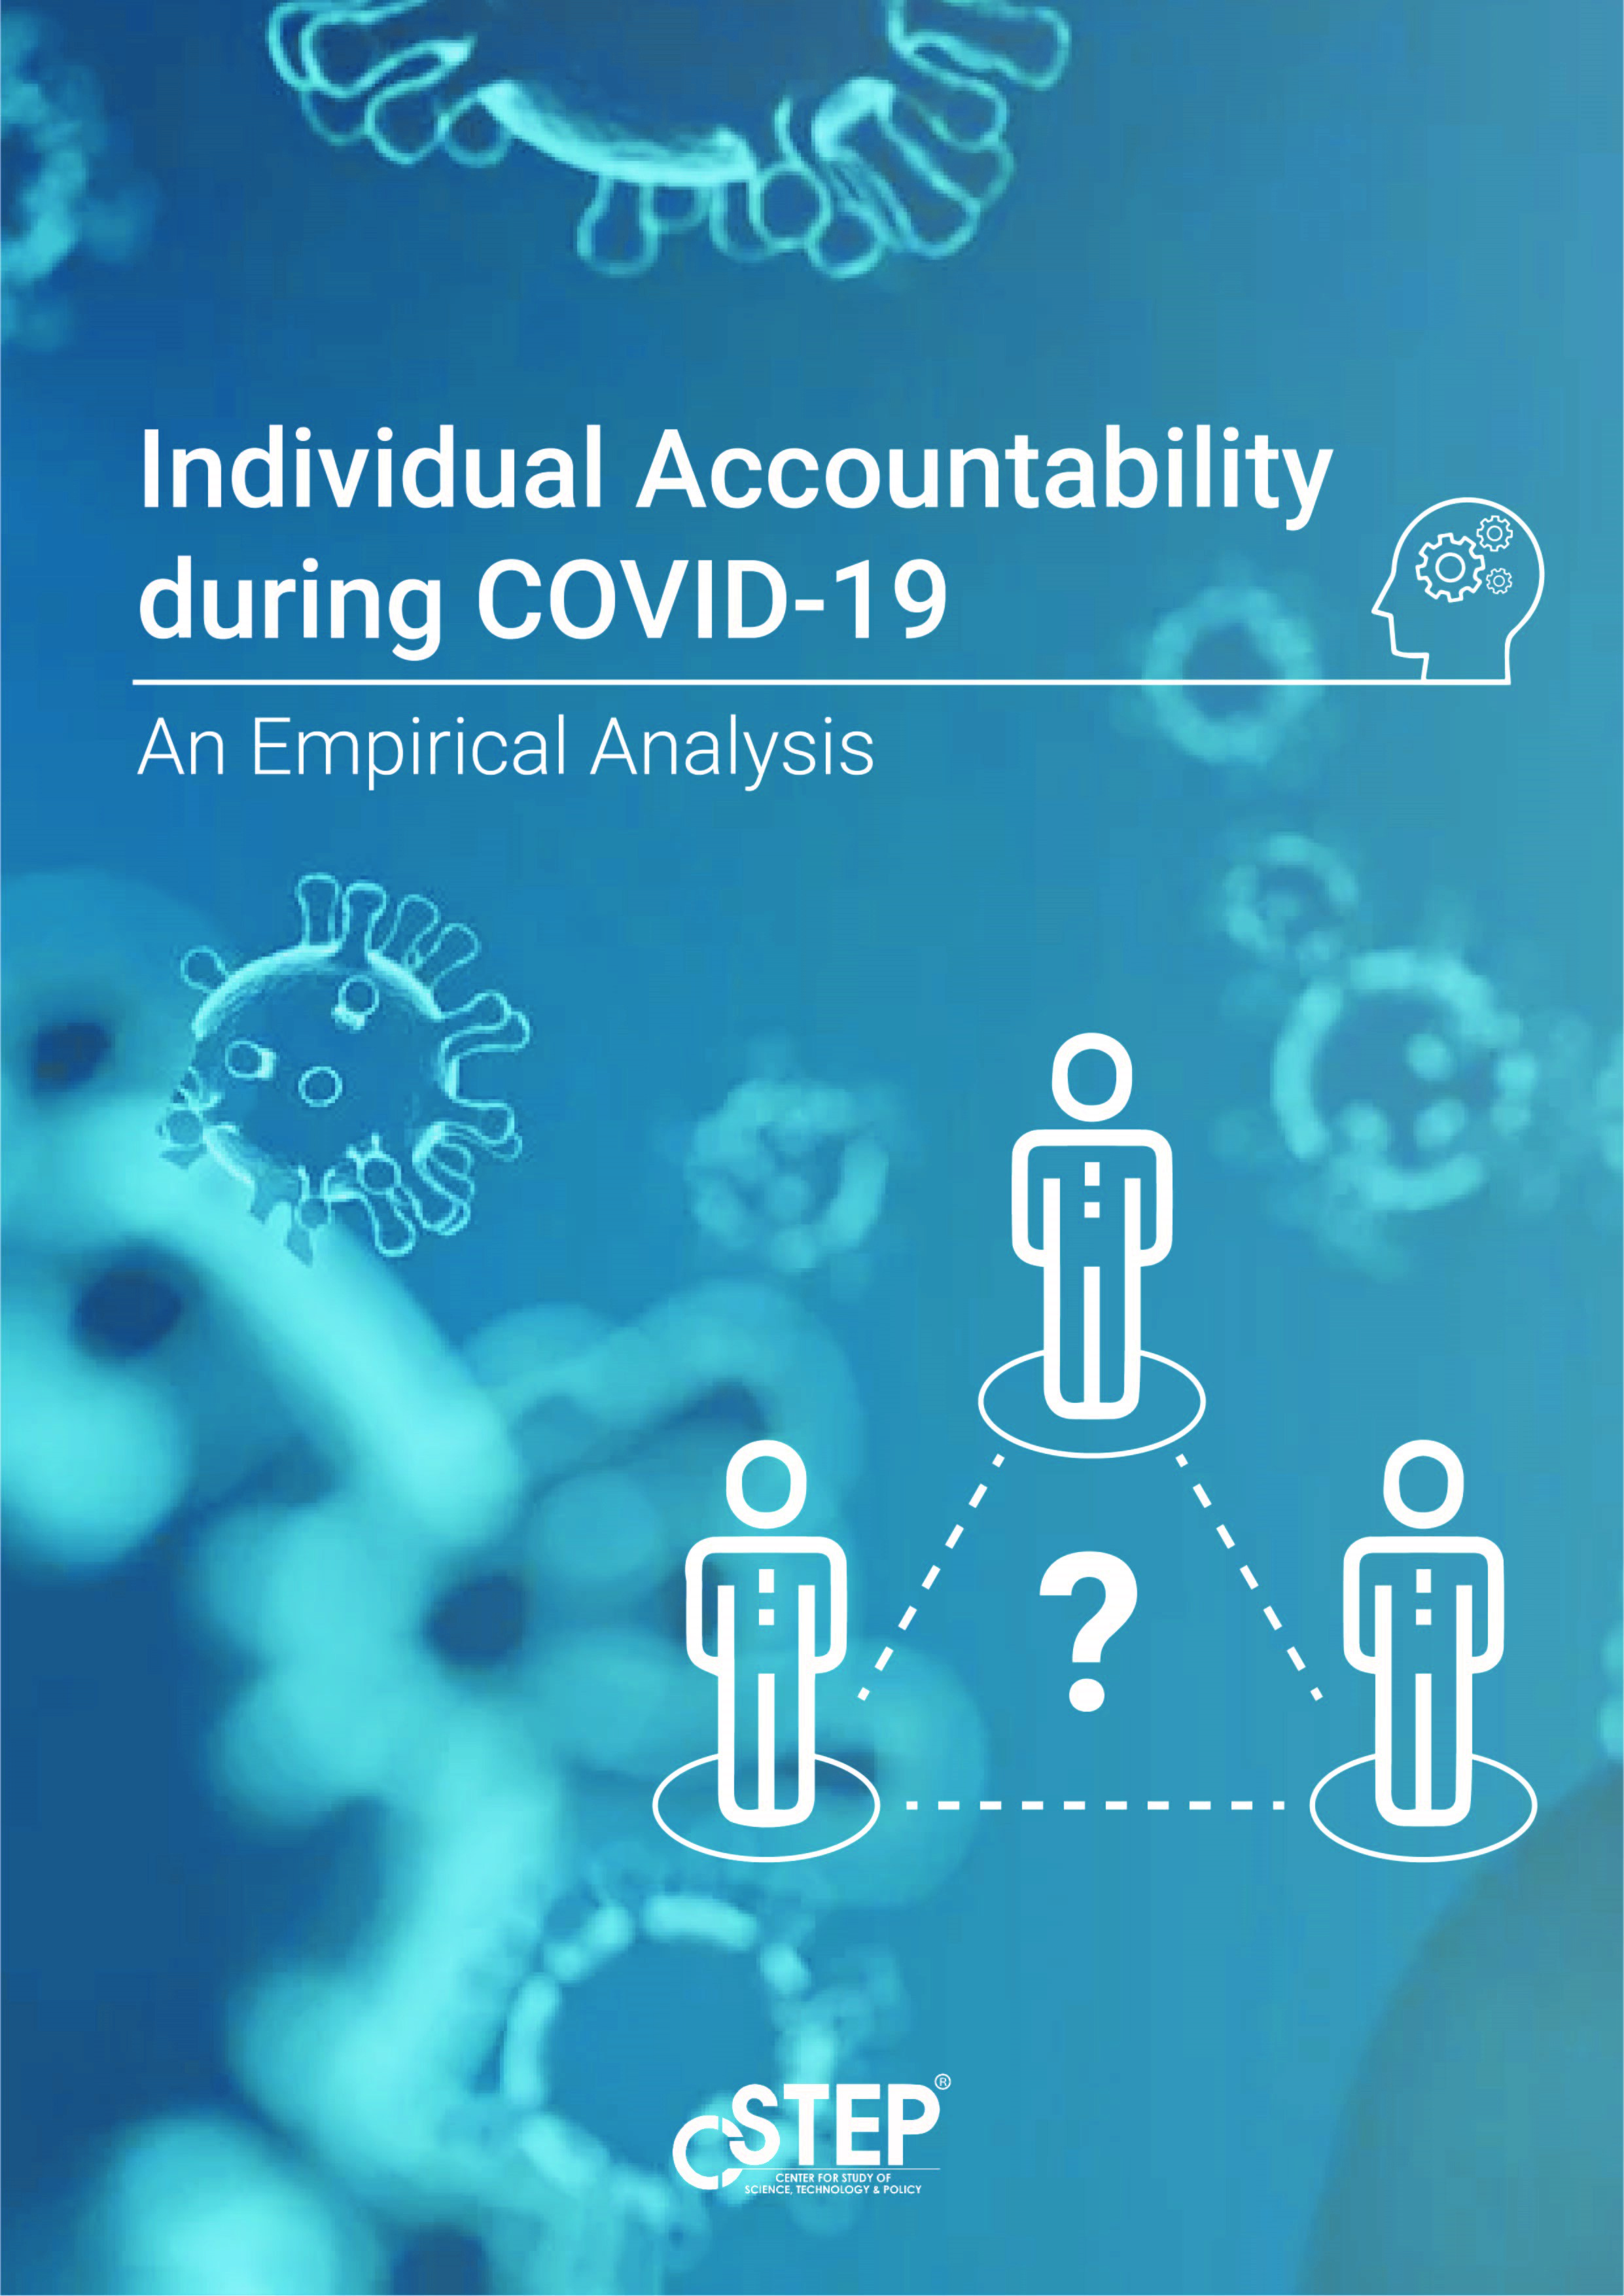 Individual Accountability during COVID-19 – An Empirical Analysis